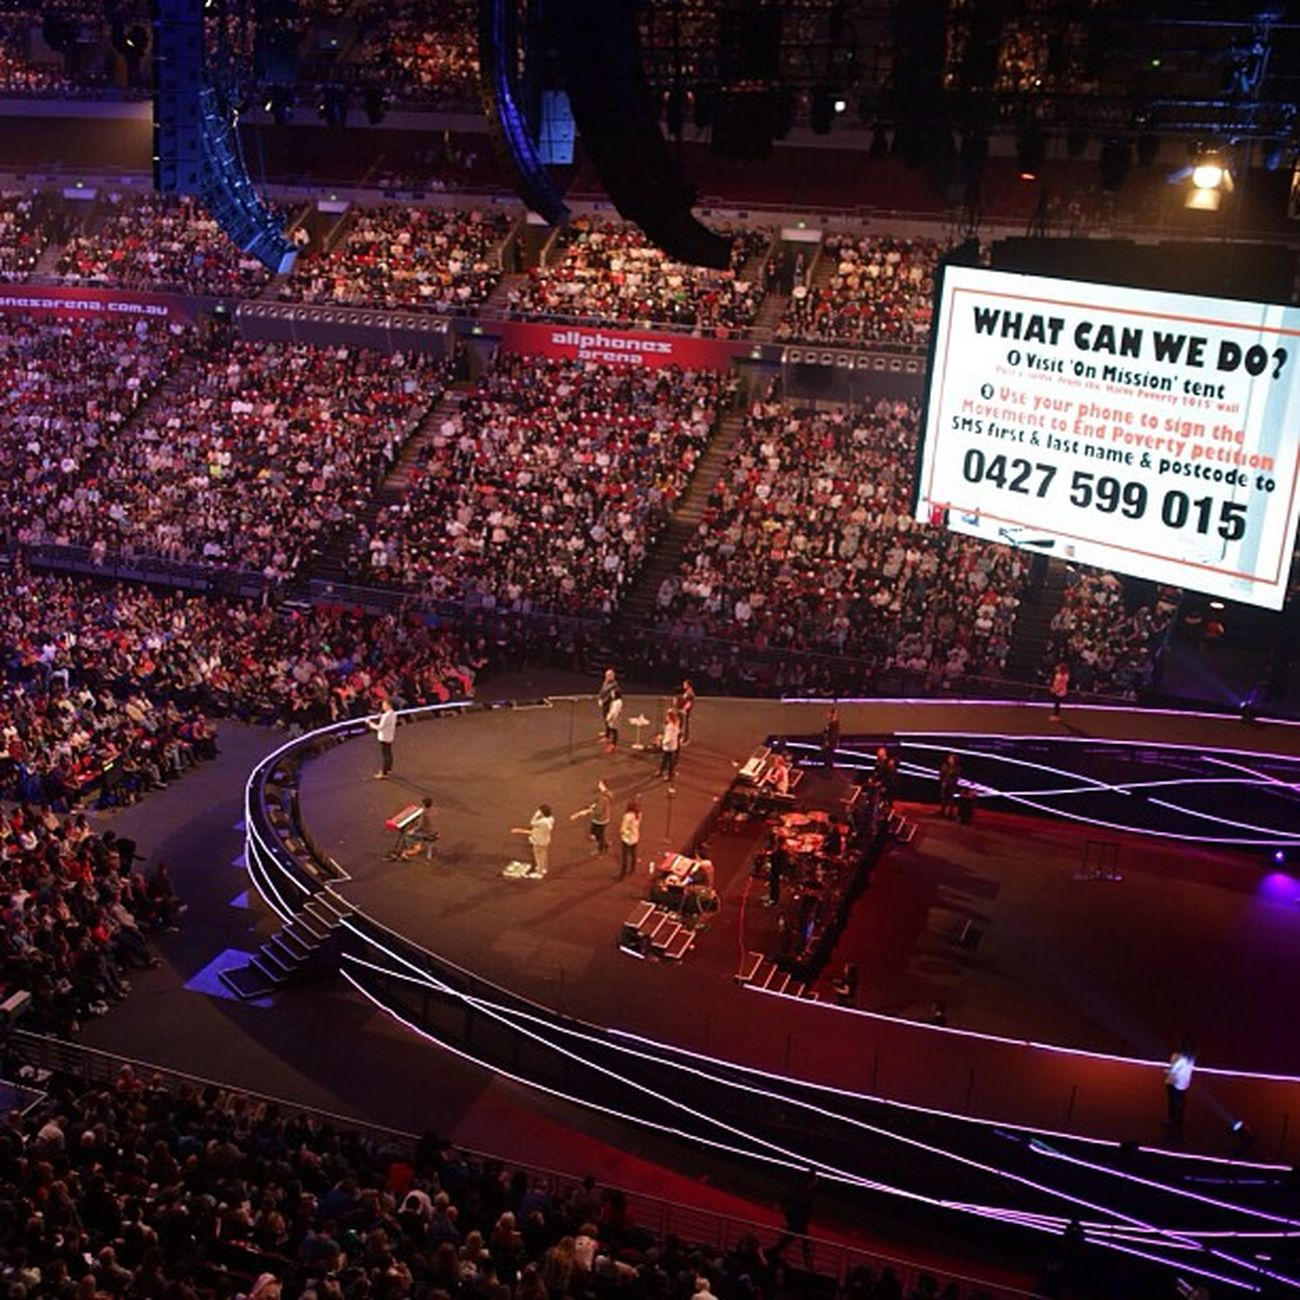 Hillsongconf joining with Micahchallenge for Halvepovertyby2015 - Endpoverty